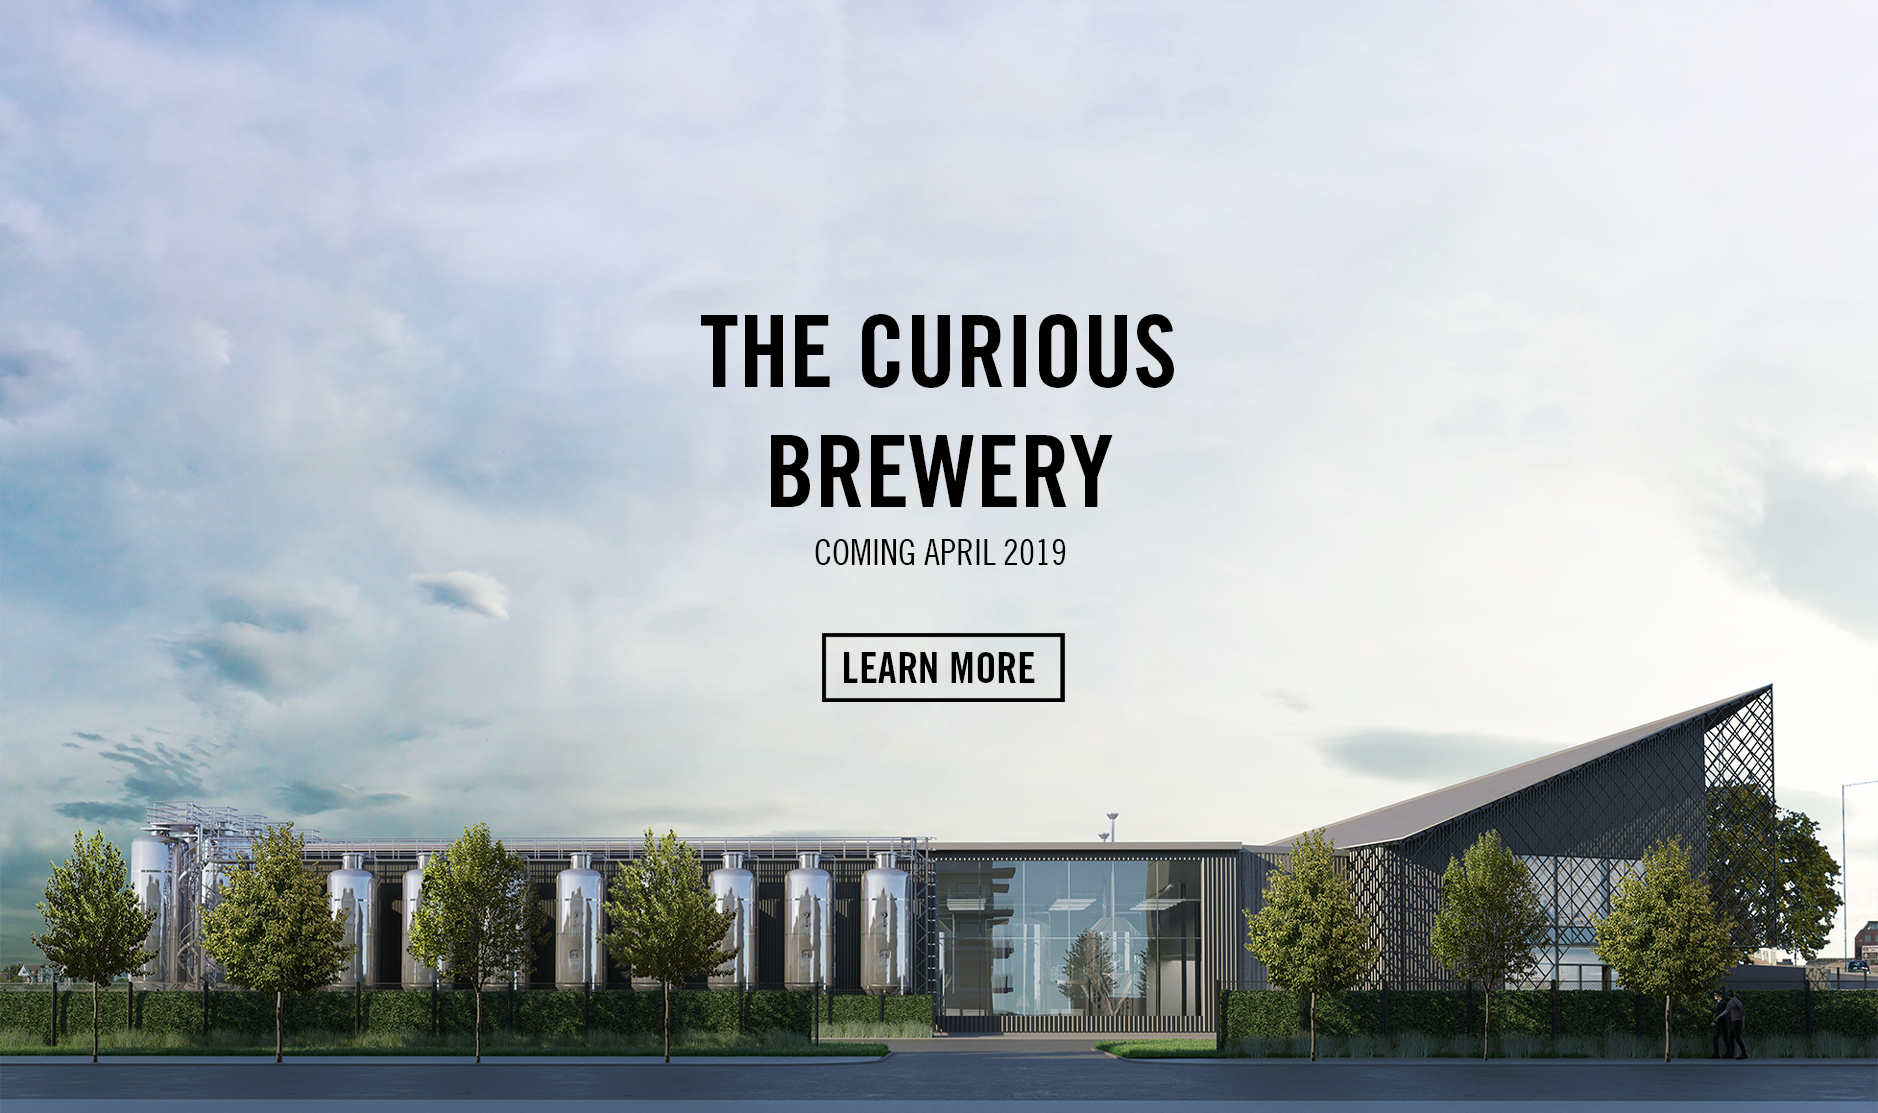 Brewery Image